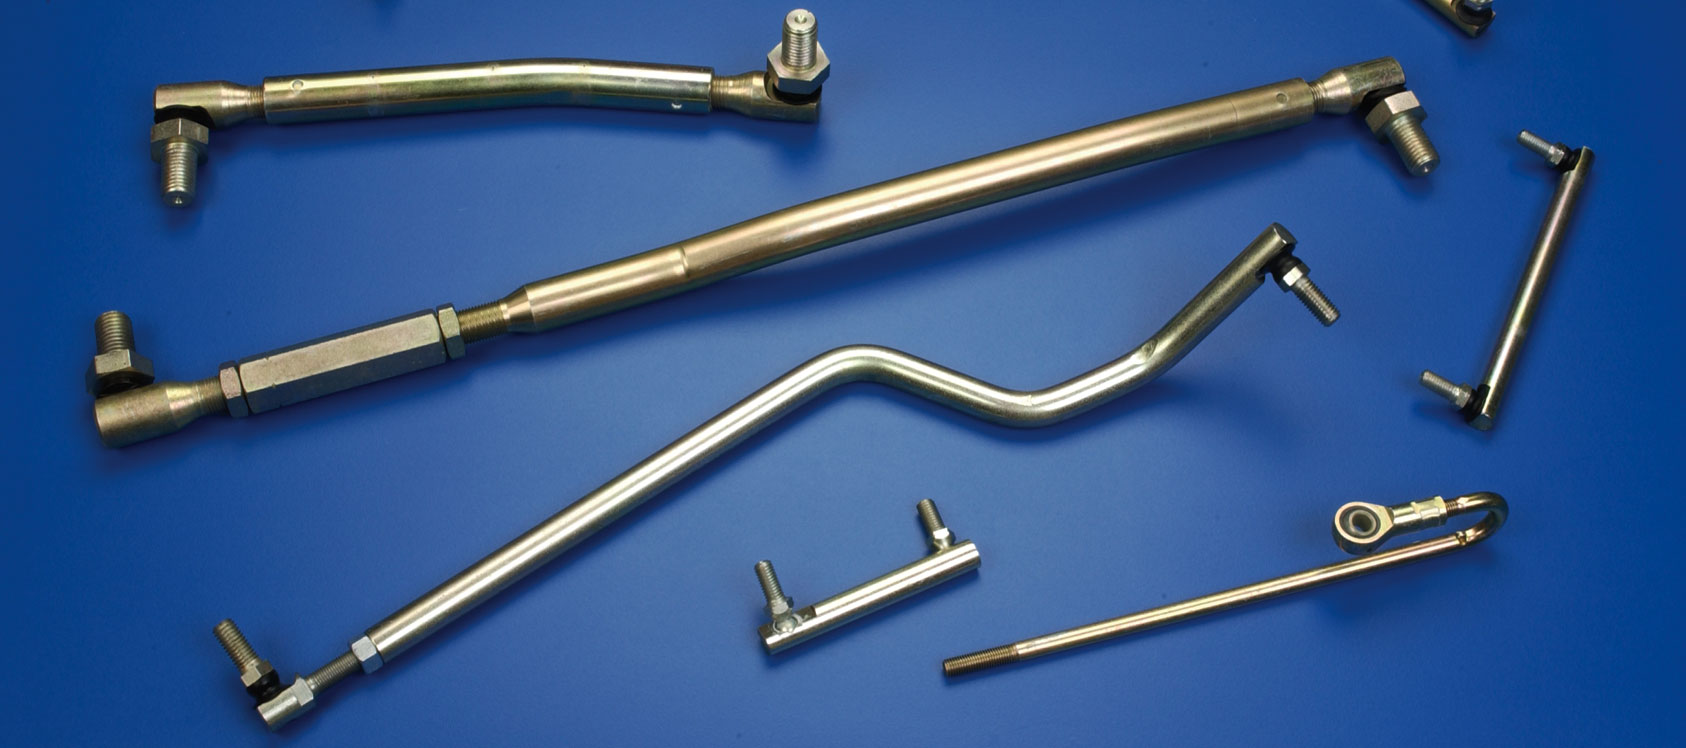 Cablecraft linkage assemblies